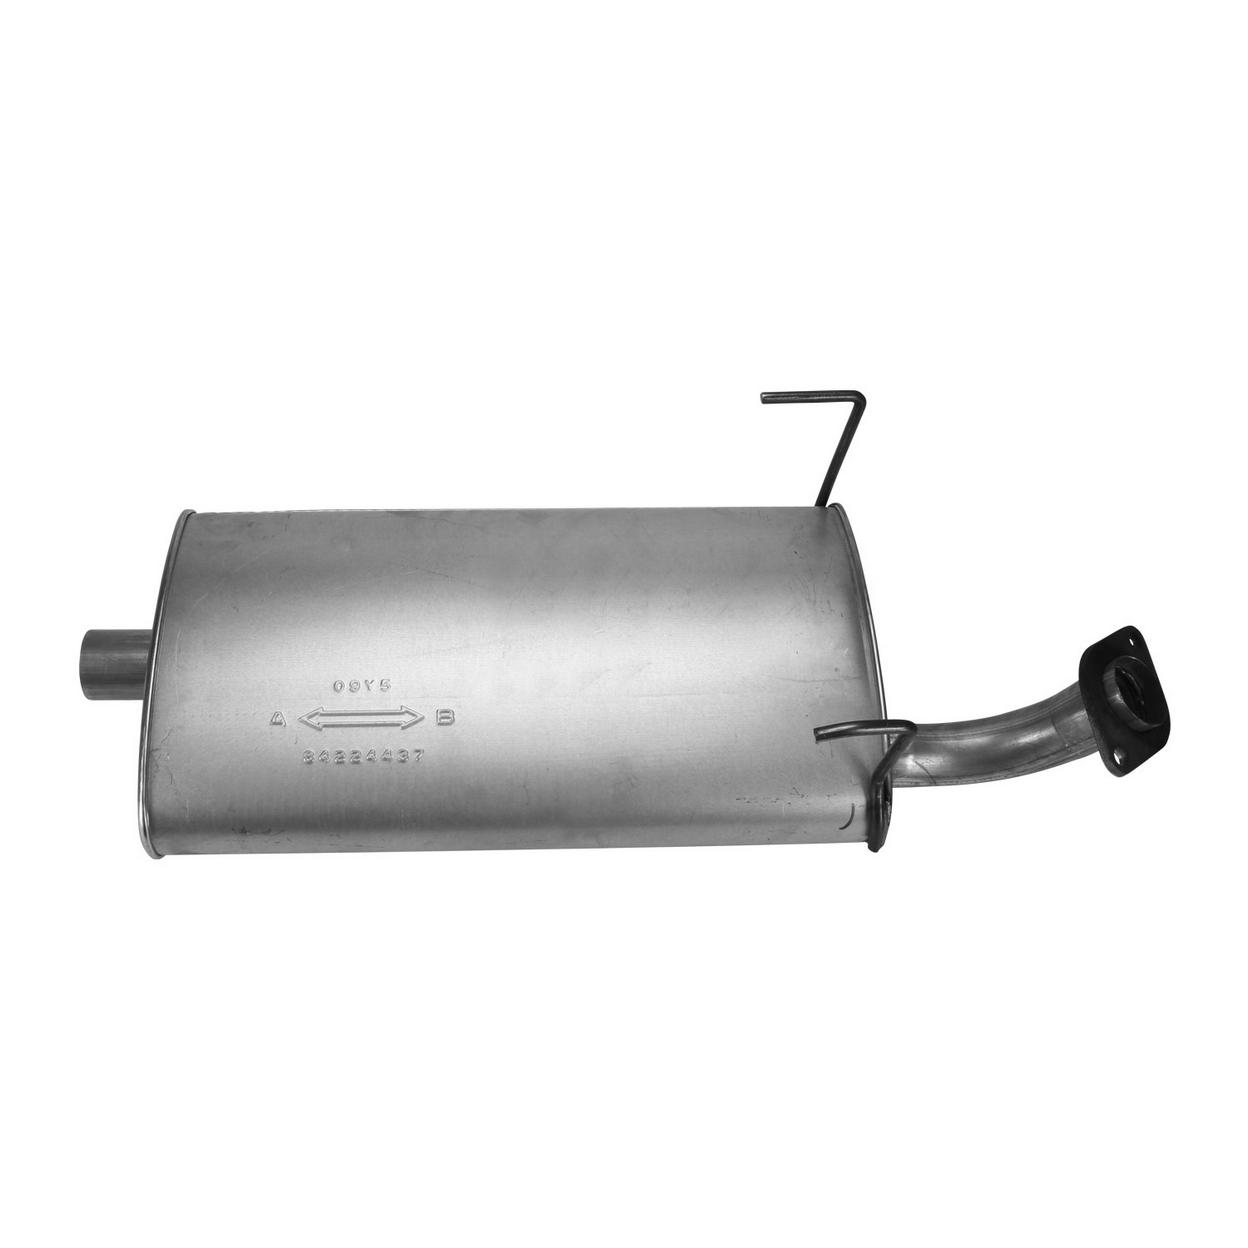 Exhaust Muffler for 1995-1998 Toyota T100 2.7L L4 GAS DOHC